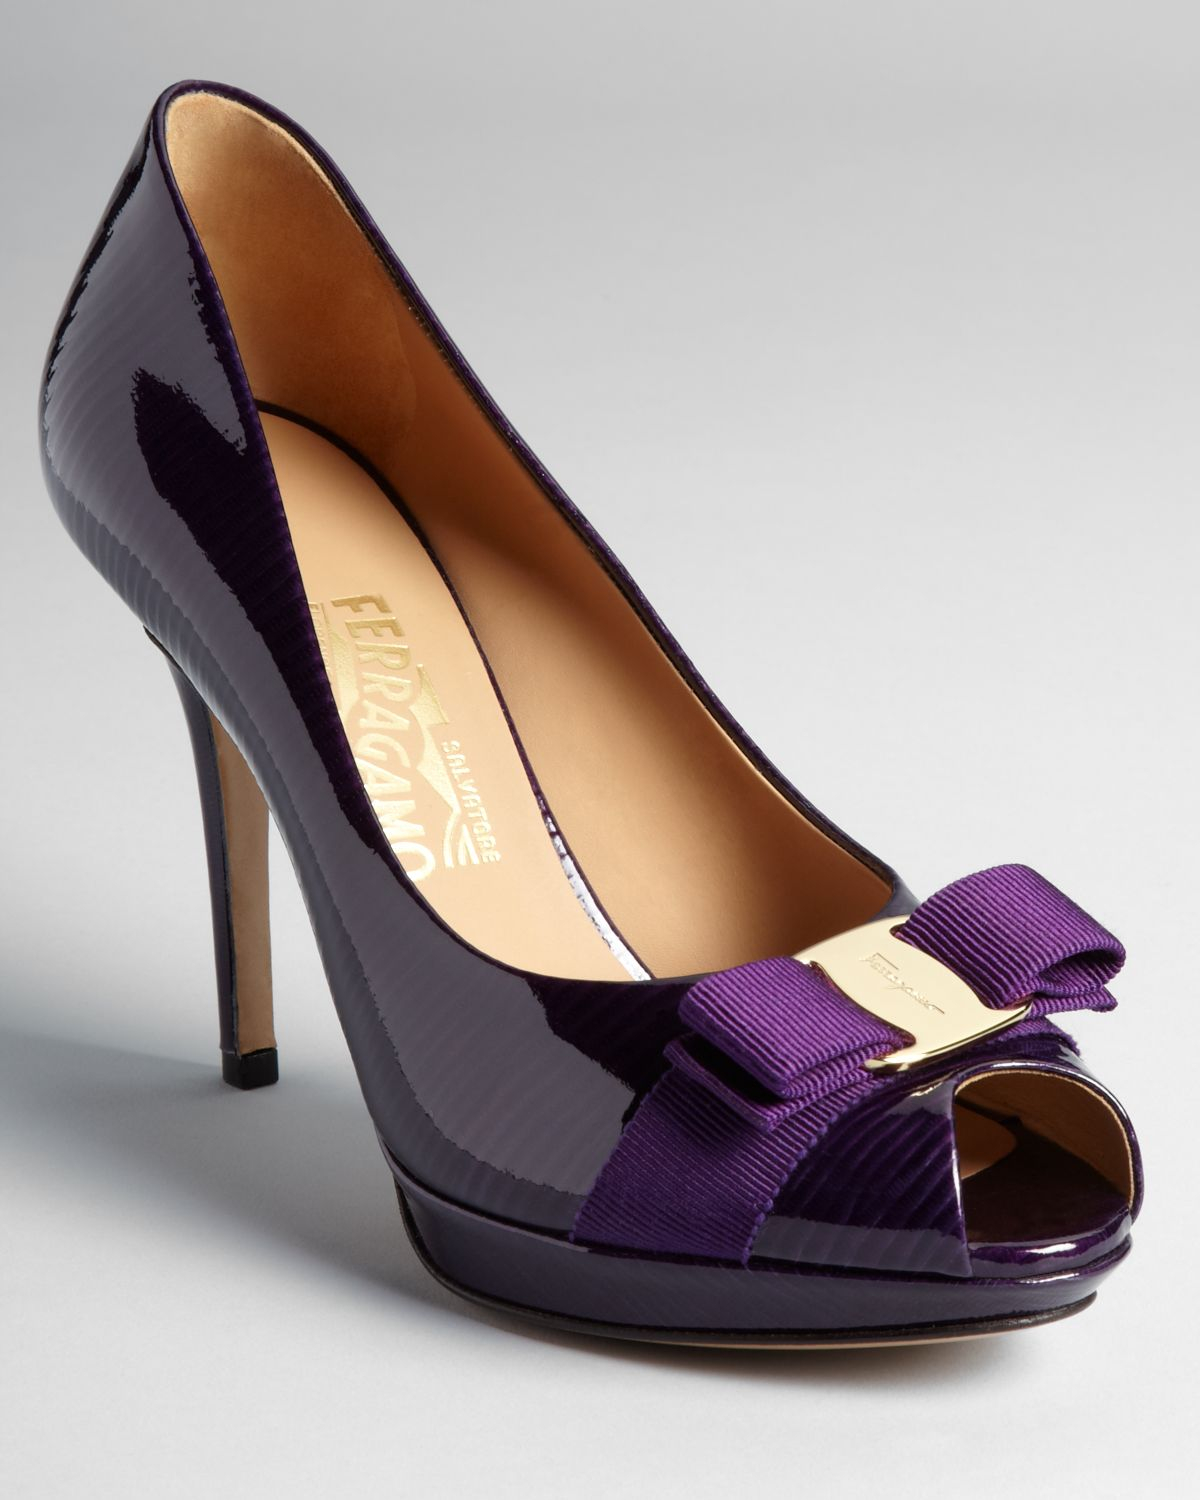 Ferragamo Pumps Talia High Heel Peep Toe Platform in Purple | Lyst